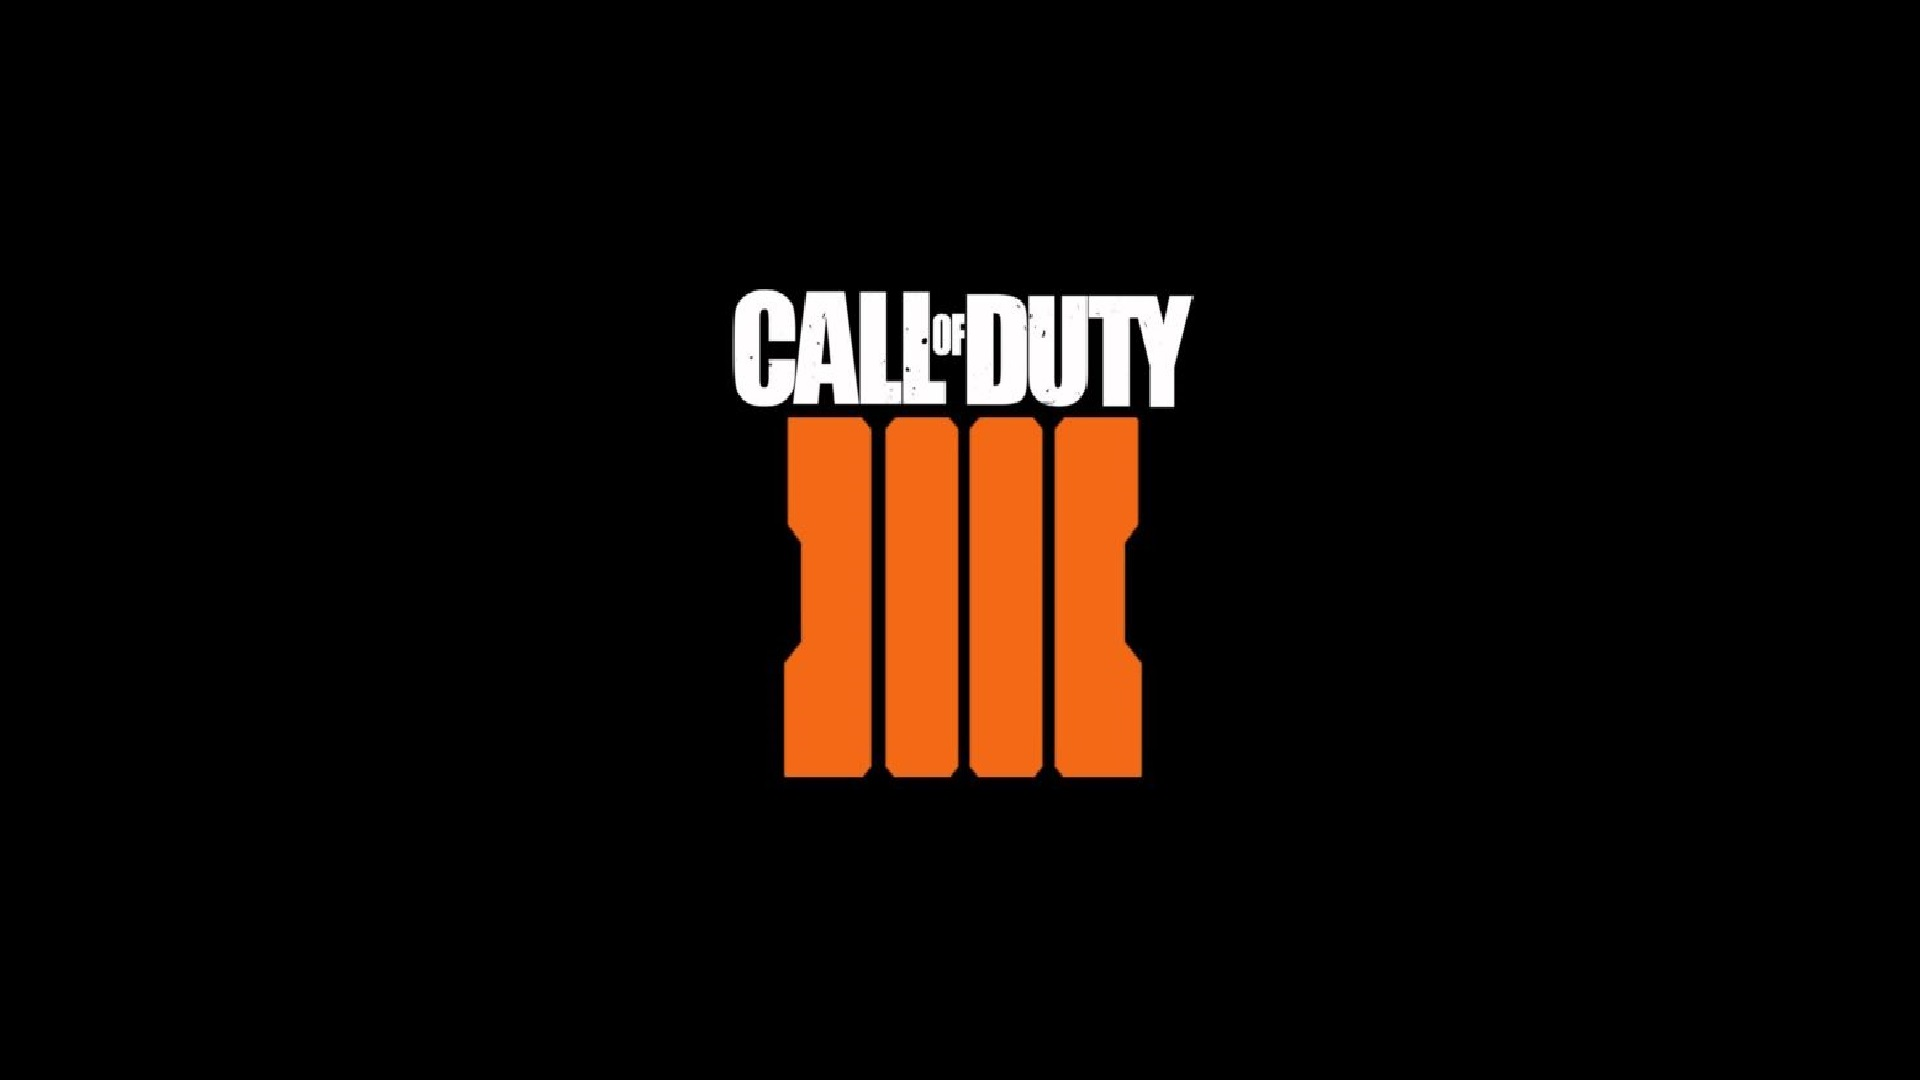 call of duty black ops 4 wallpaper 4k